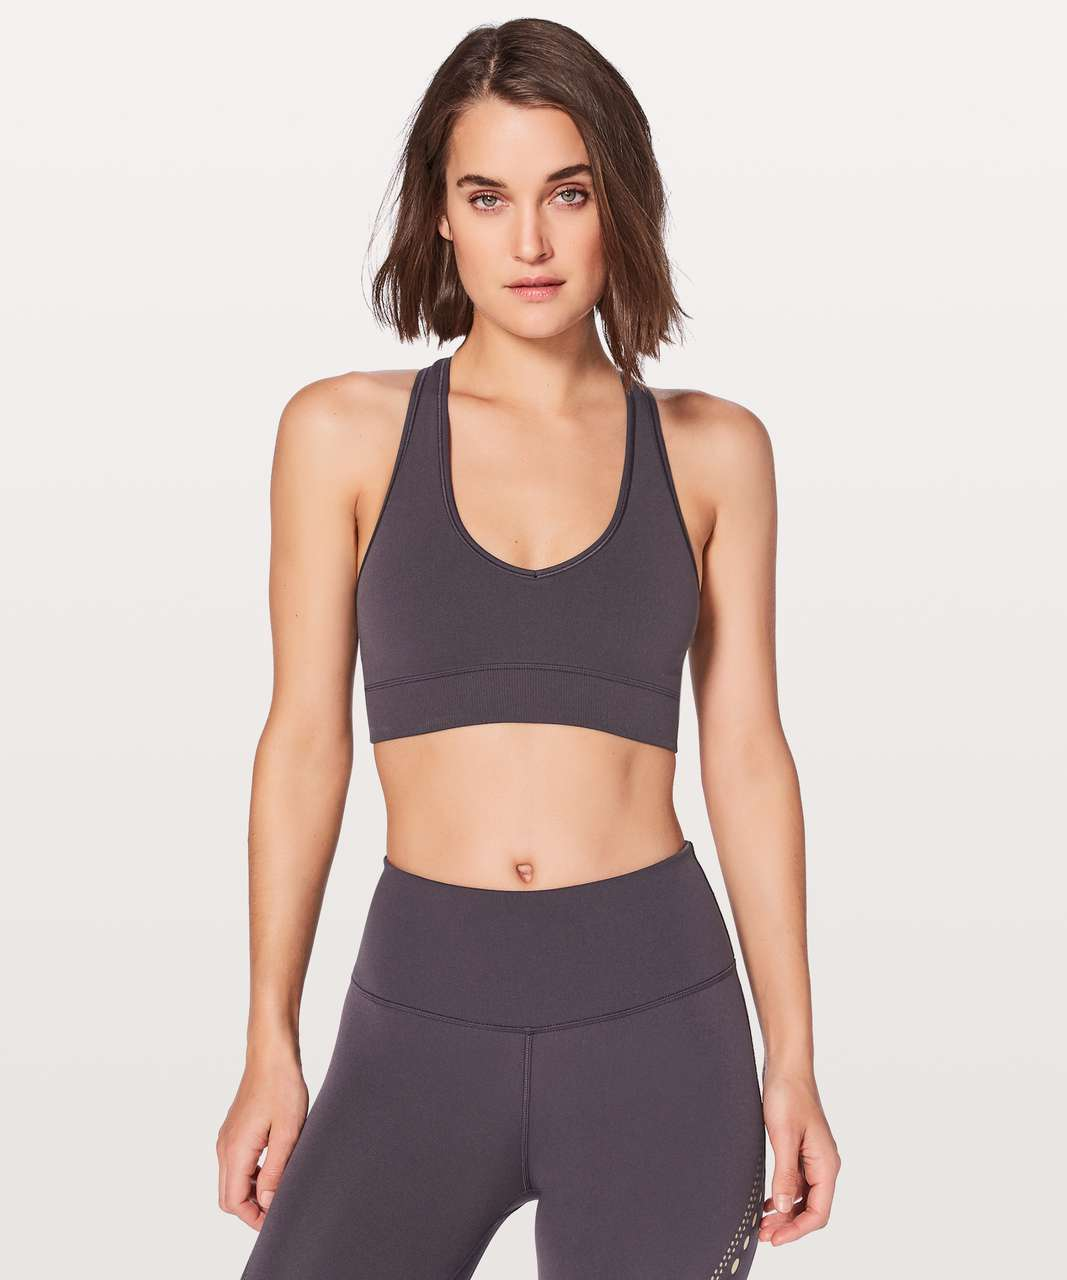 Lululemon Reveal Bra Precision - Boysenberry